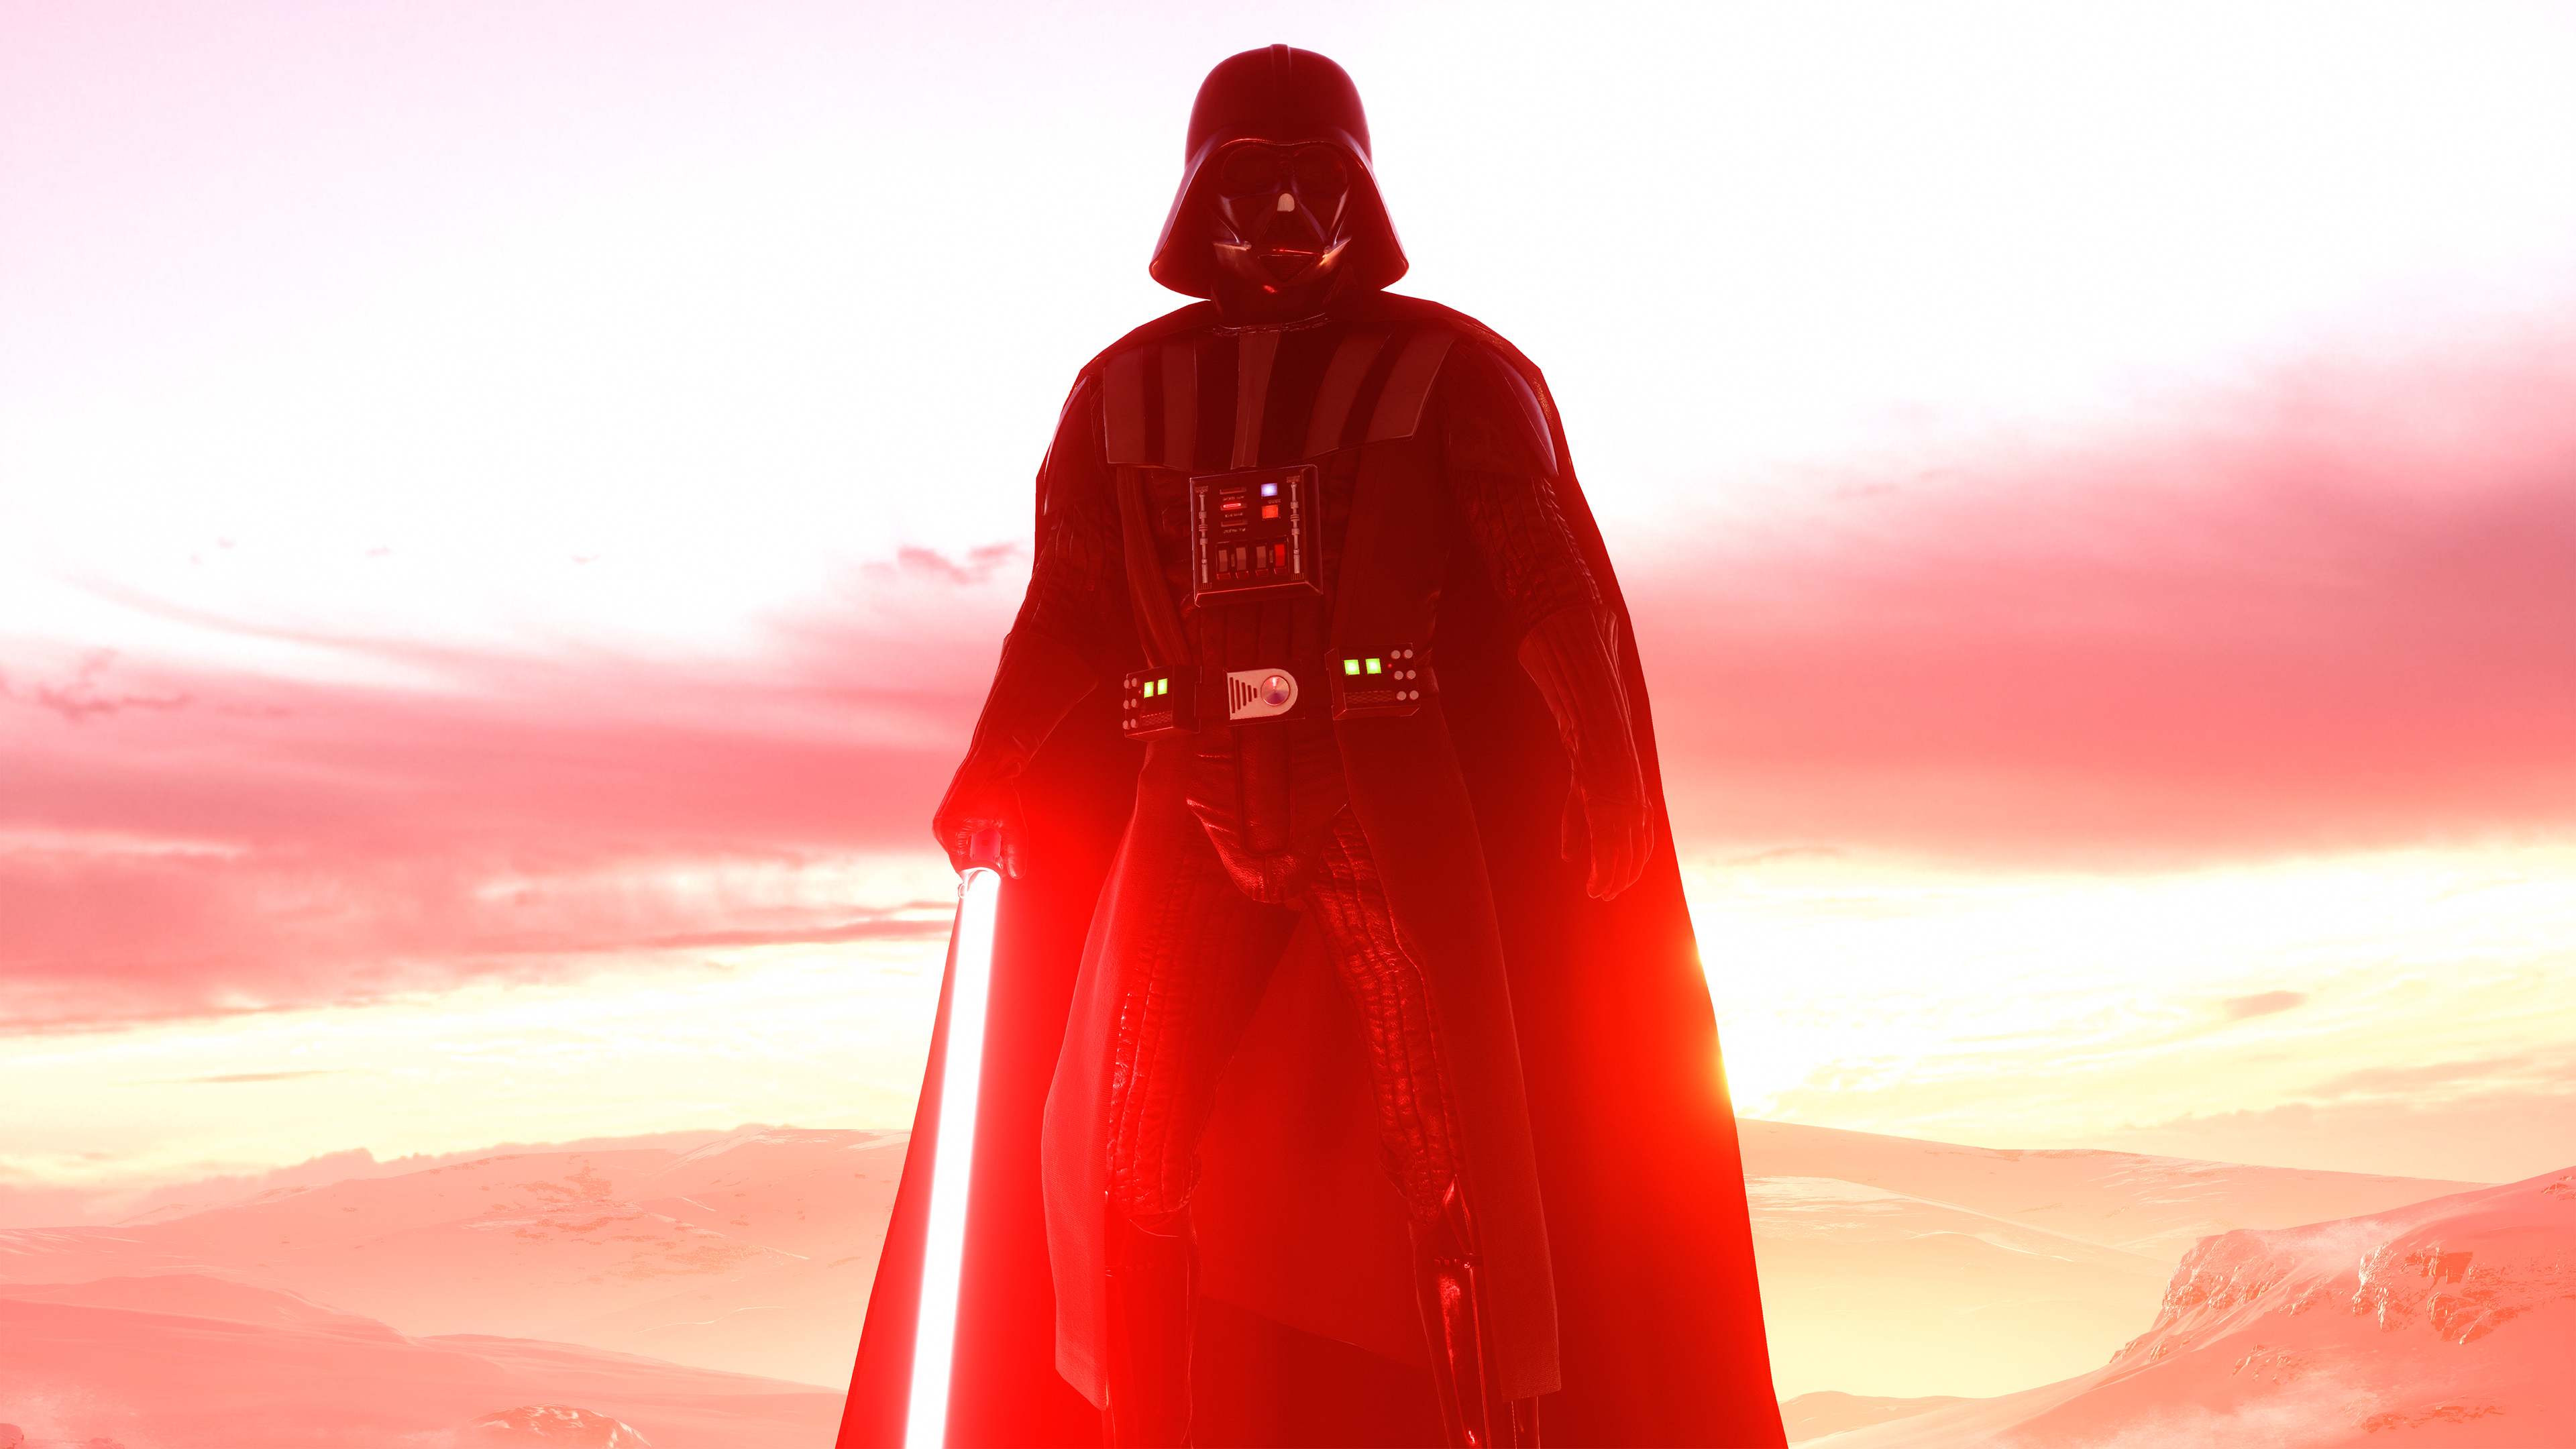 Darth Vader Star Wars Battlefront 2 4k Hd Games 4k